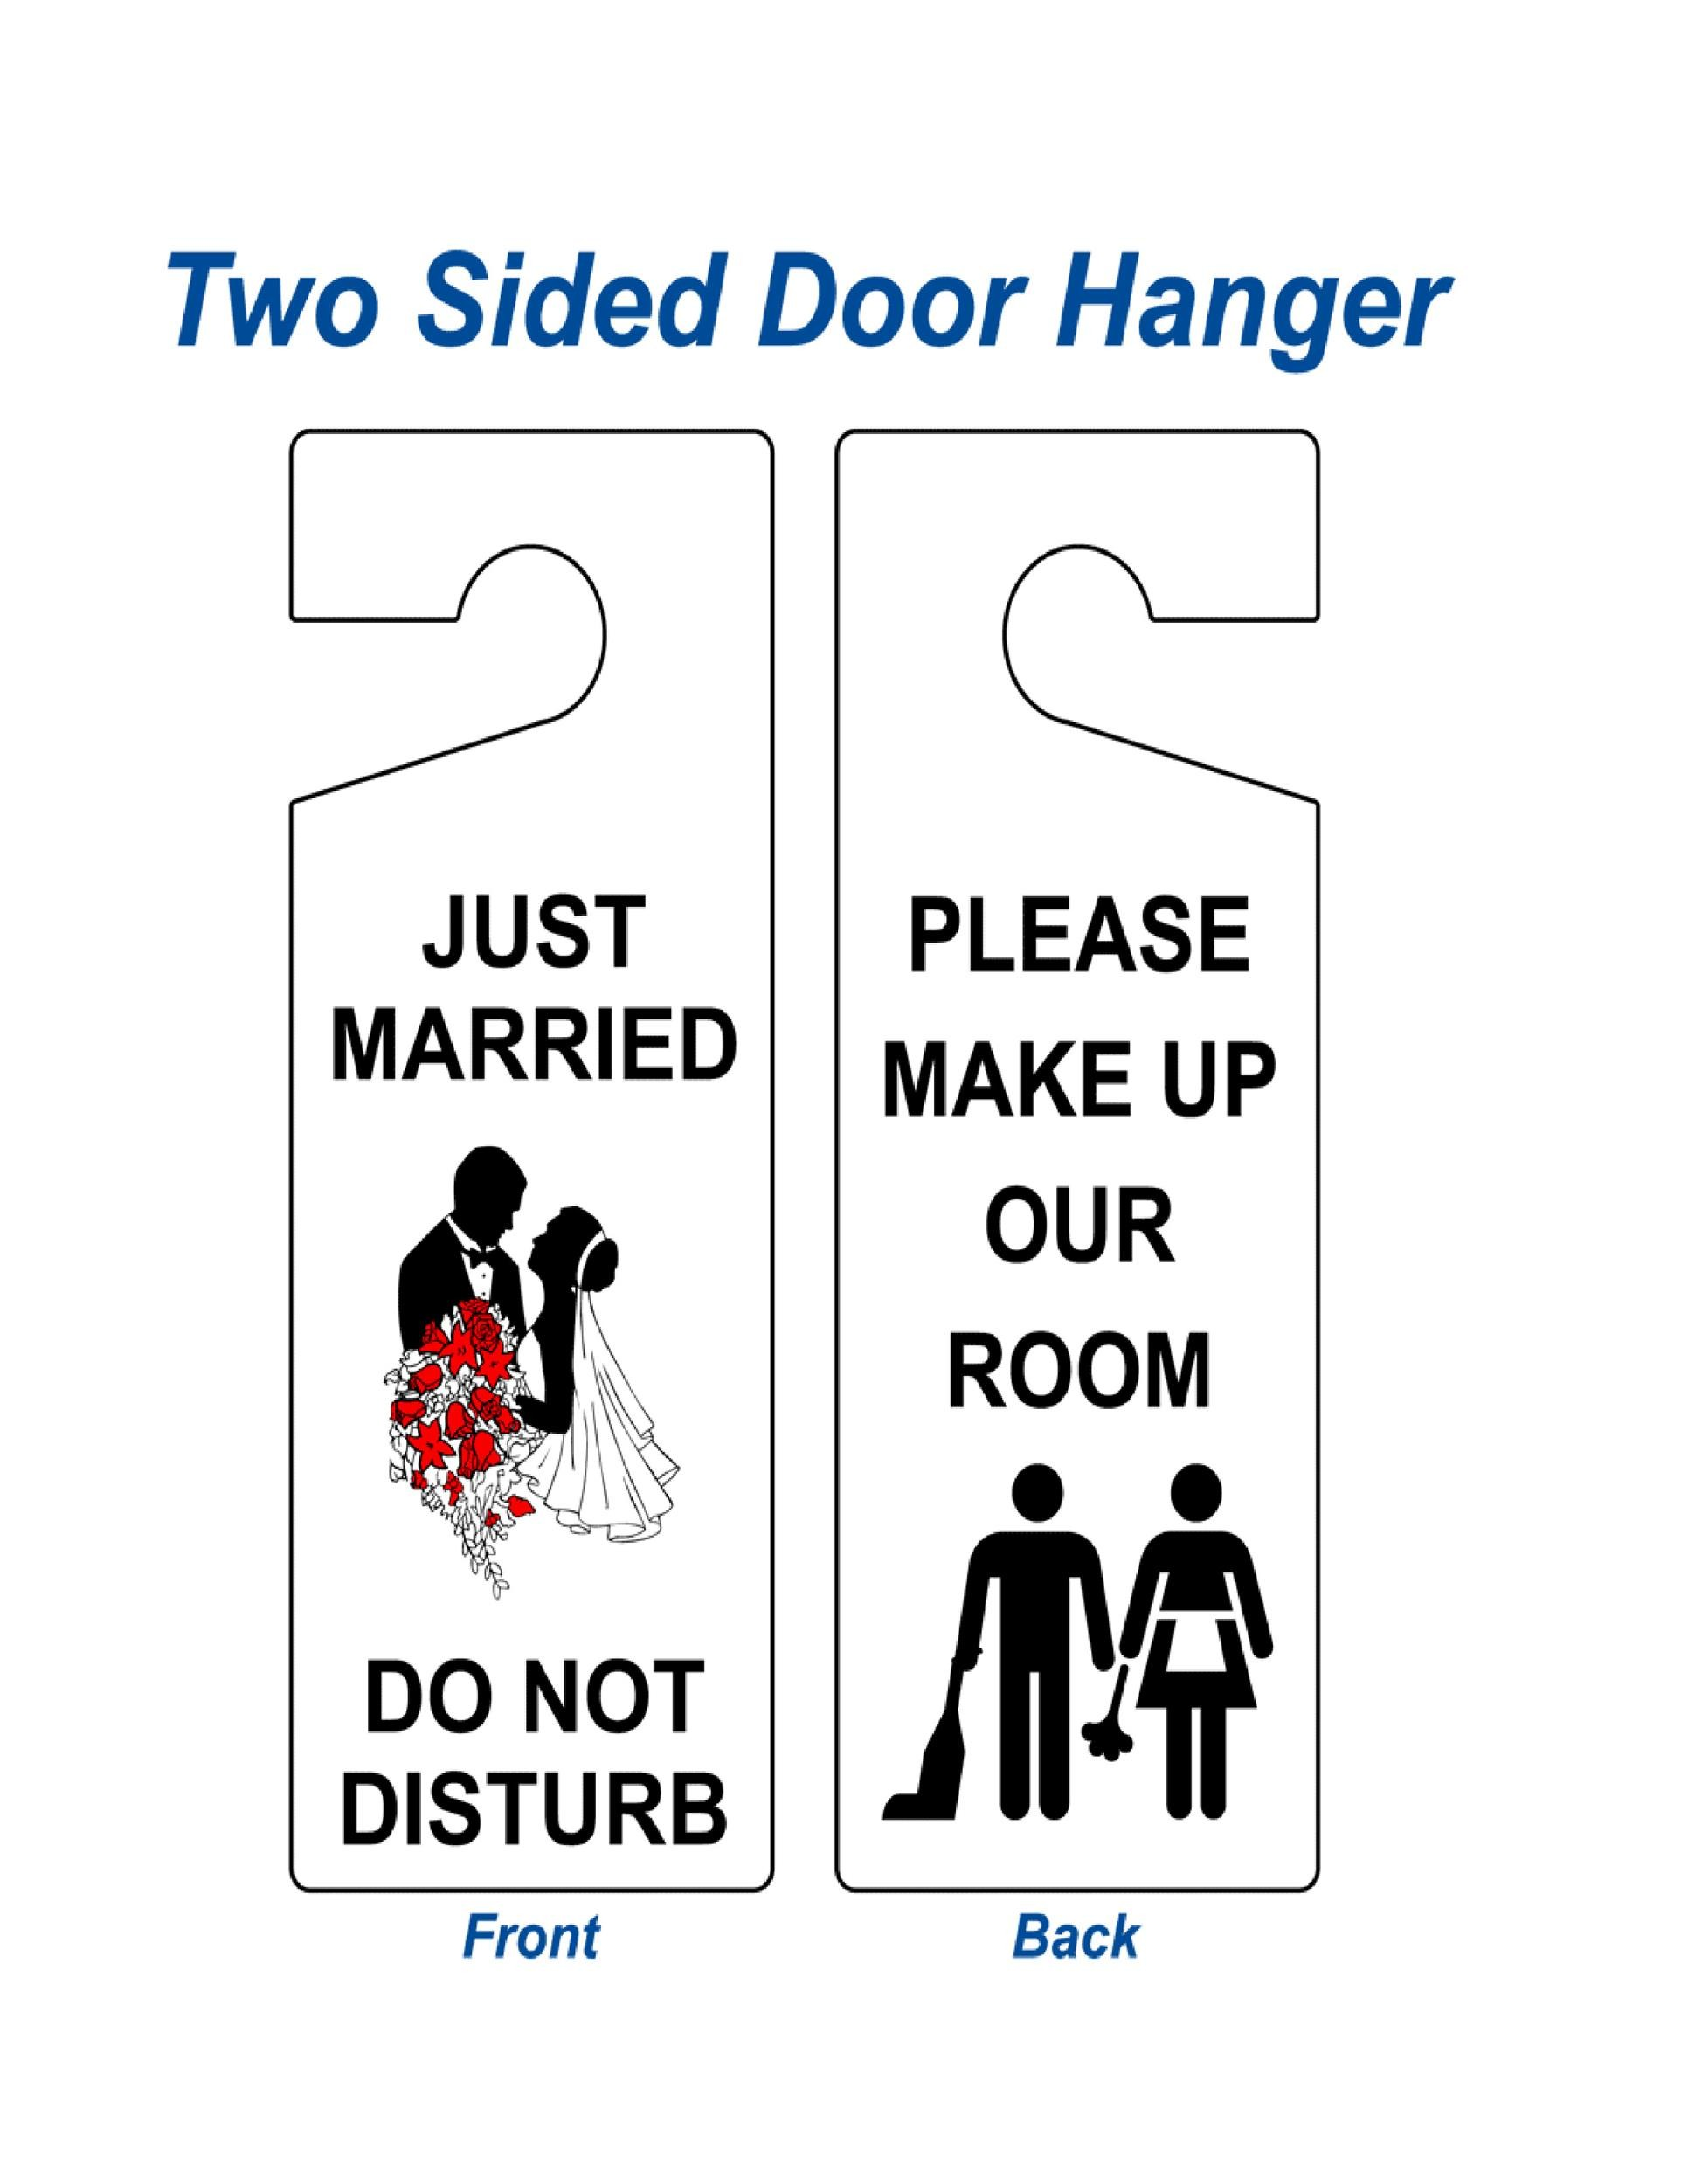 image regarding Free Printable Door Hanger Template identified as 43 Totally free Doorway Hanger Templates (Phrase, PDF) ᐅ Template Lab